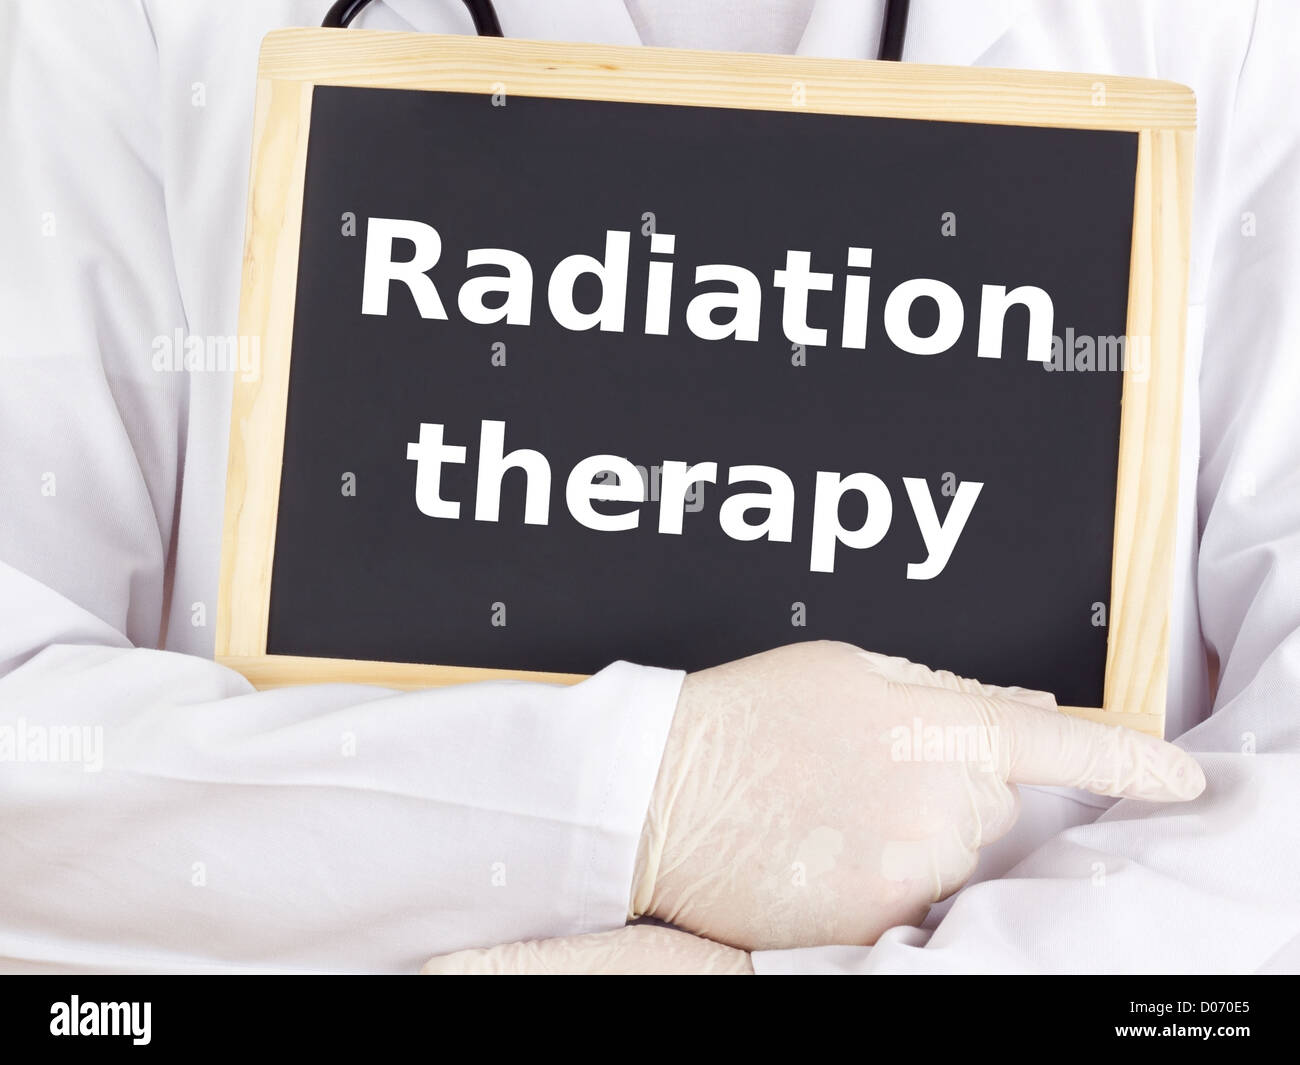 Doctor shows information: radiation therapy - Stock Image